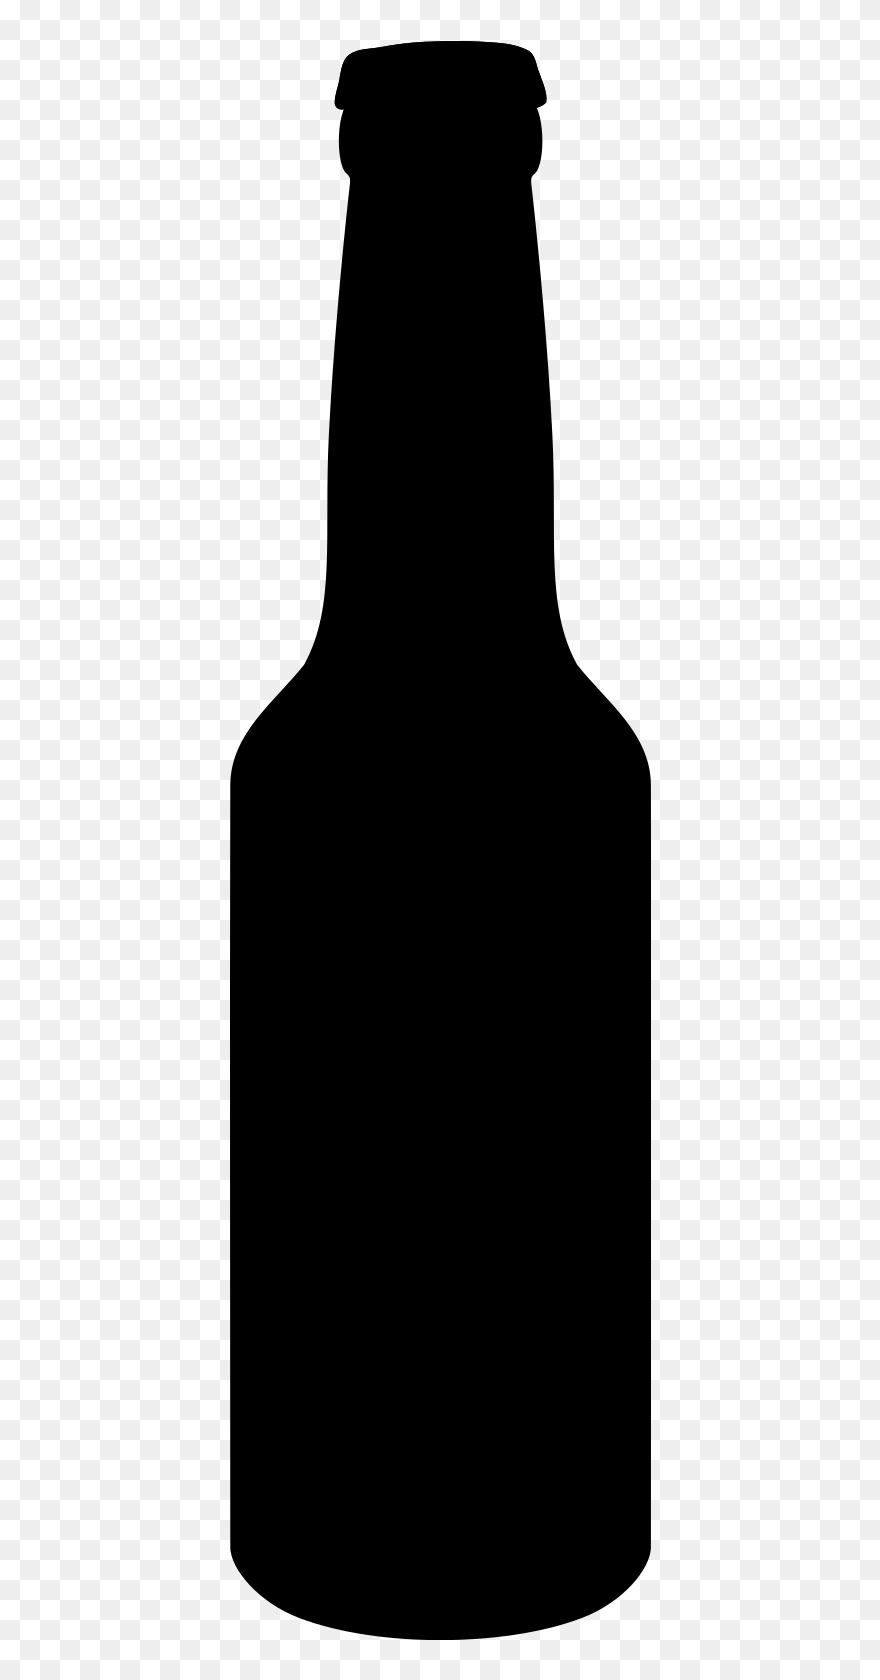 beer bottle silhouette beer bottle silhouette bottle beer silhouette